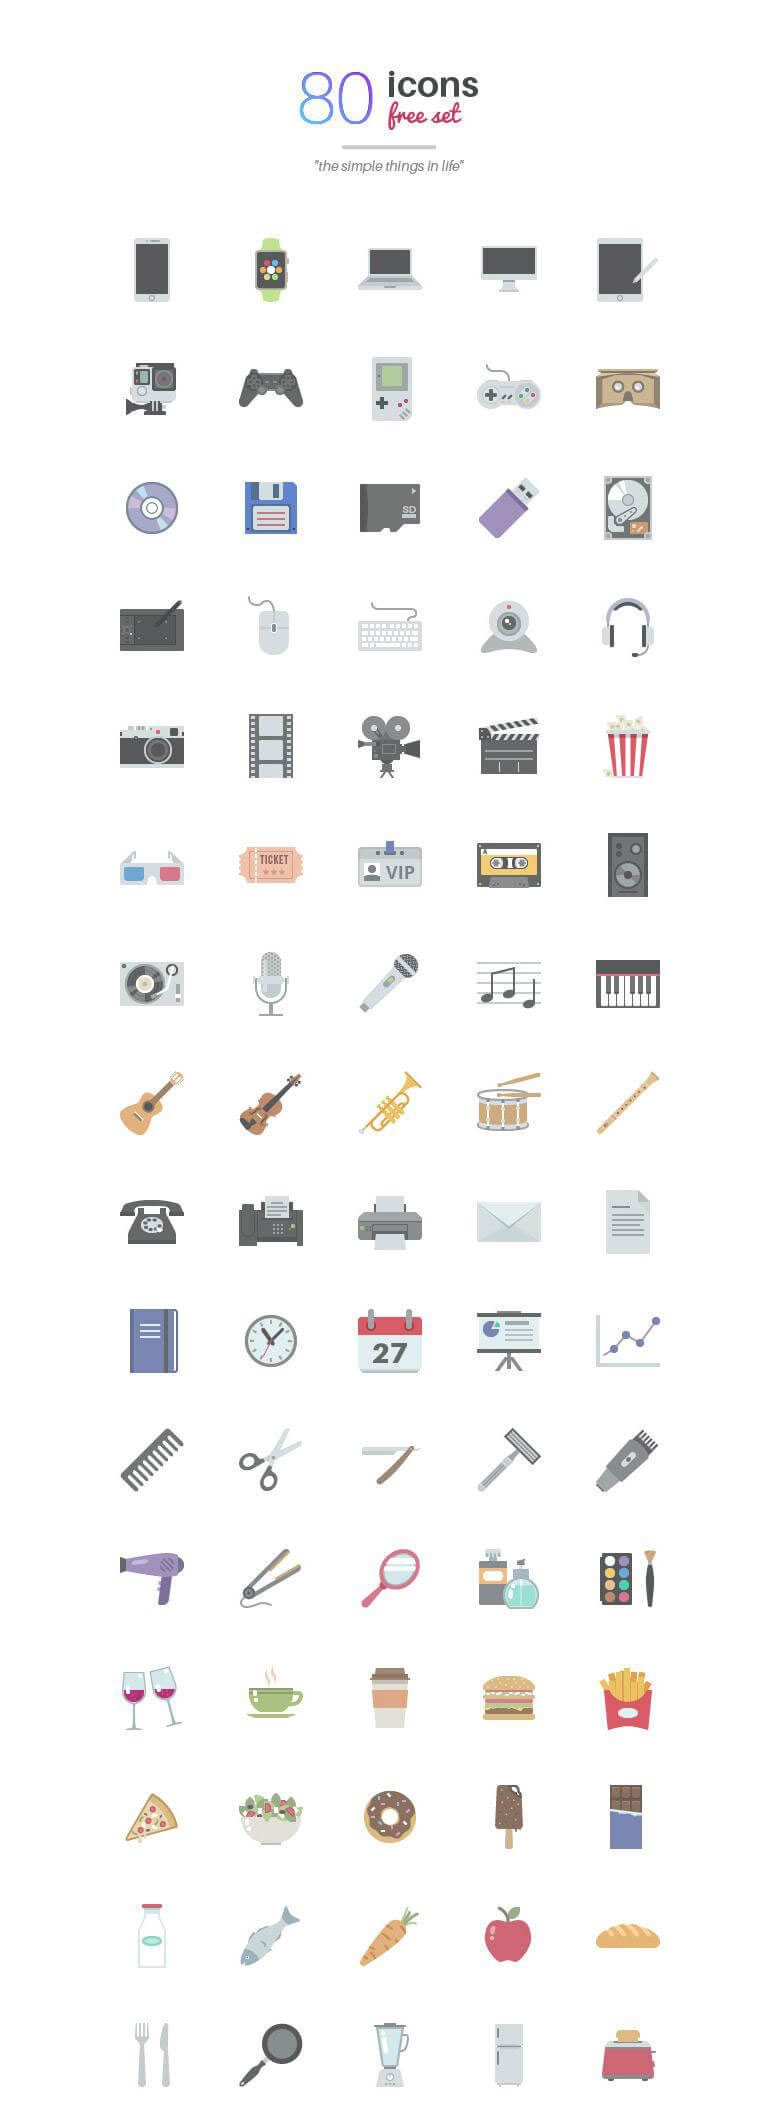 Simple Things in Life : 80 Icons Set